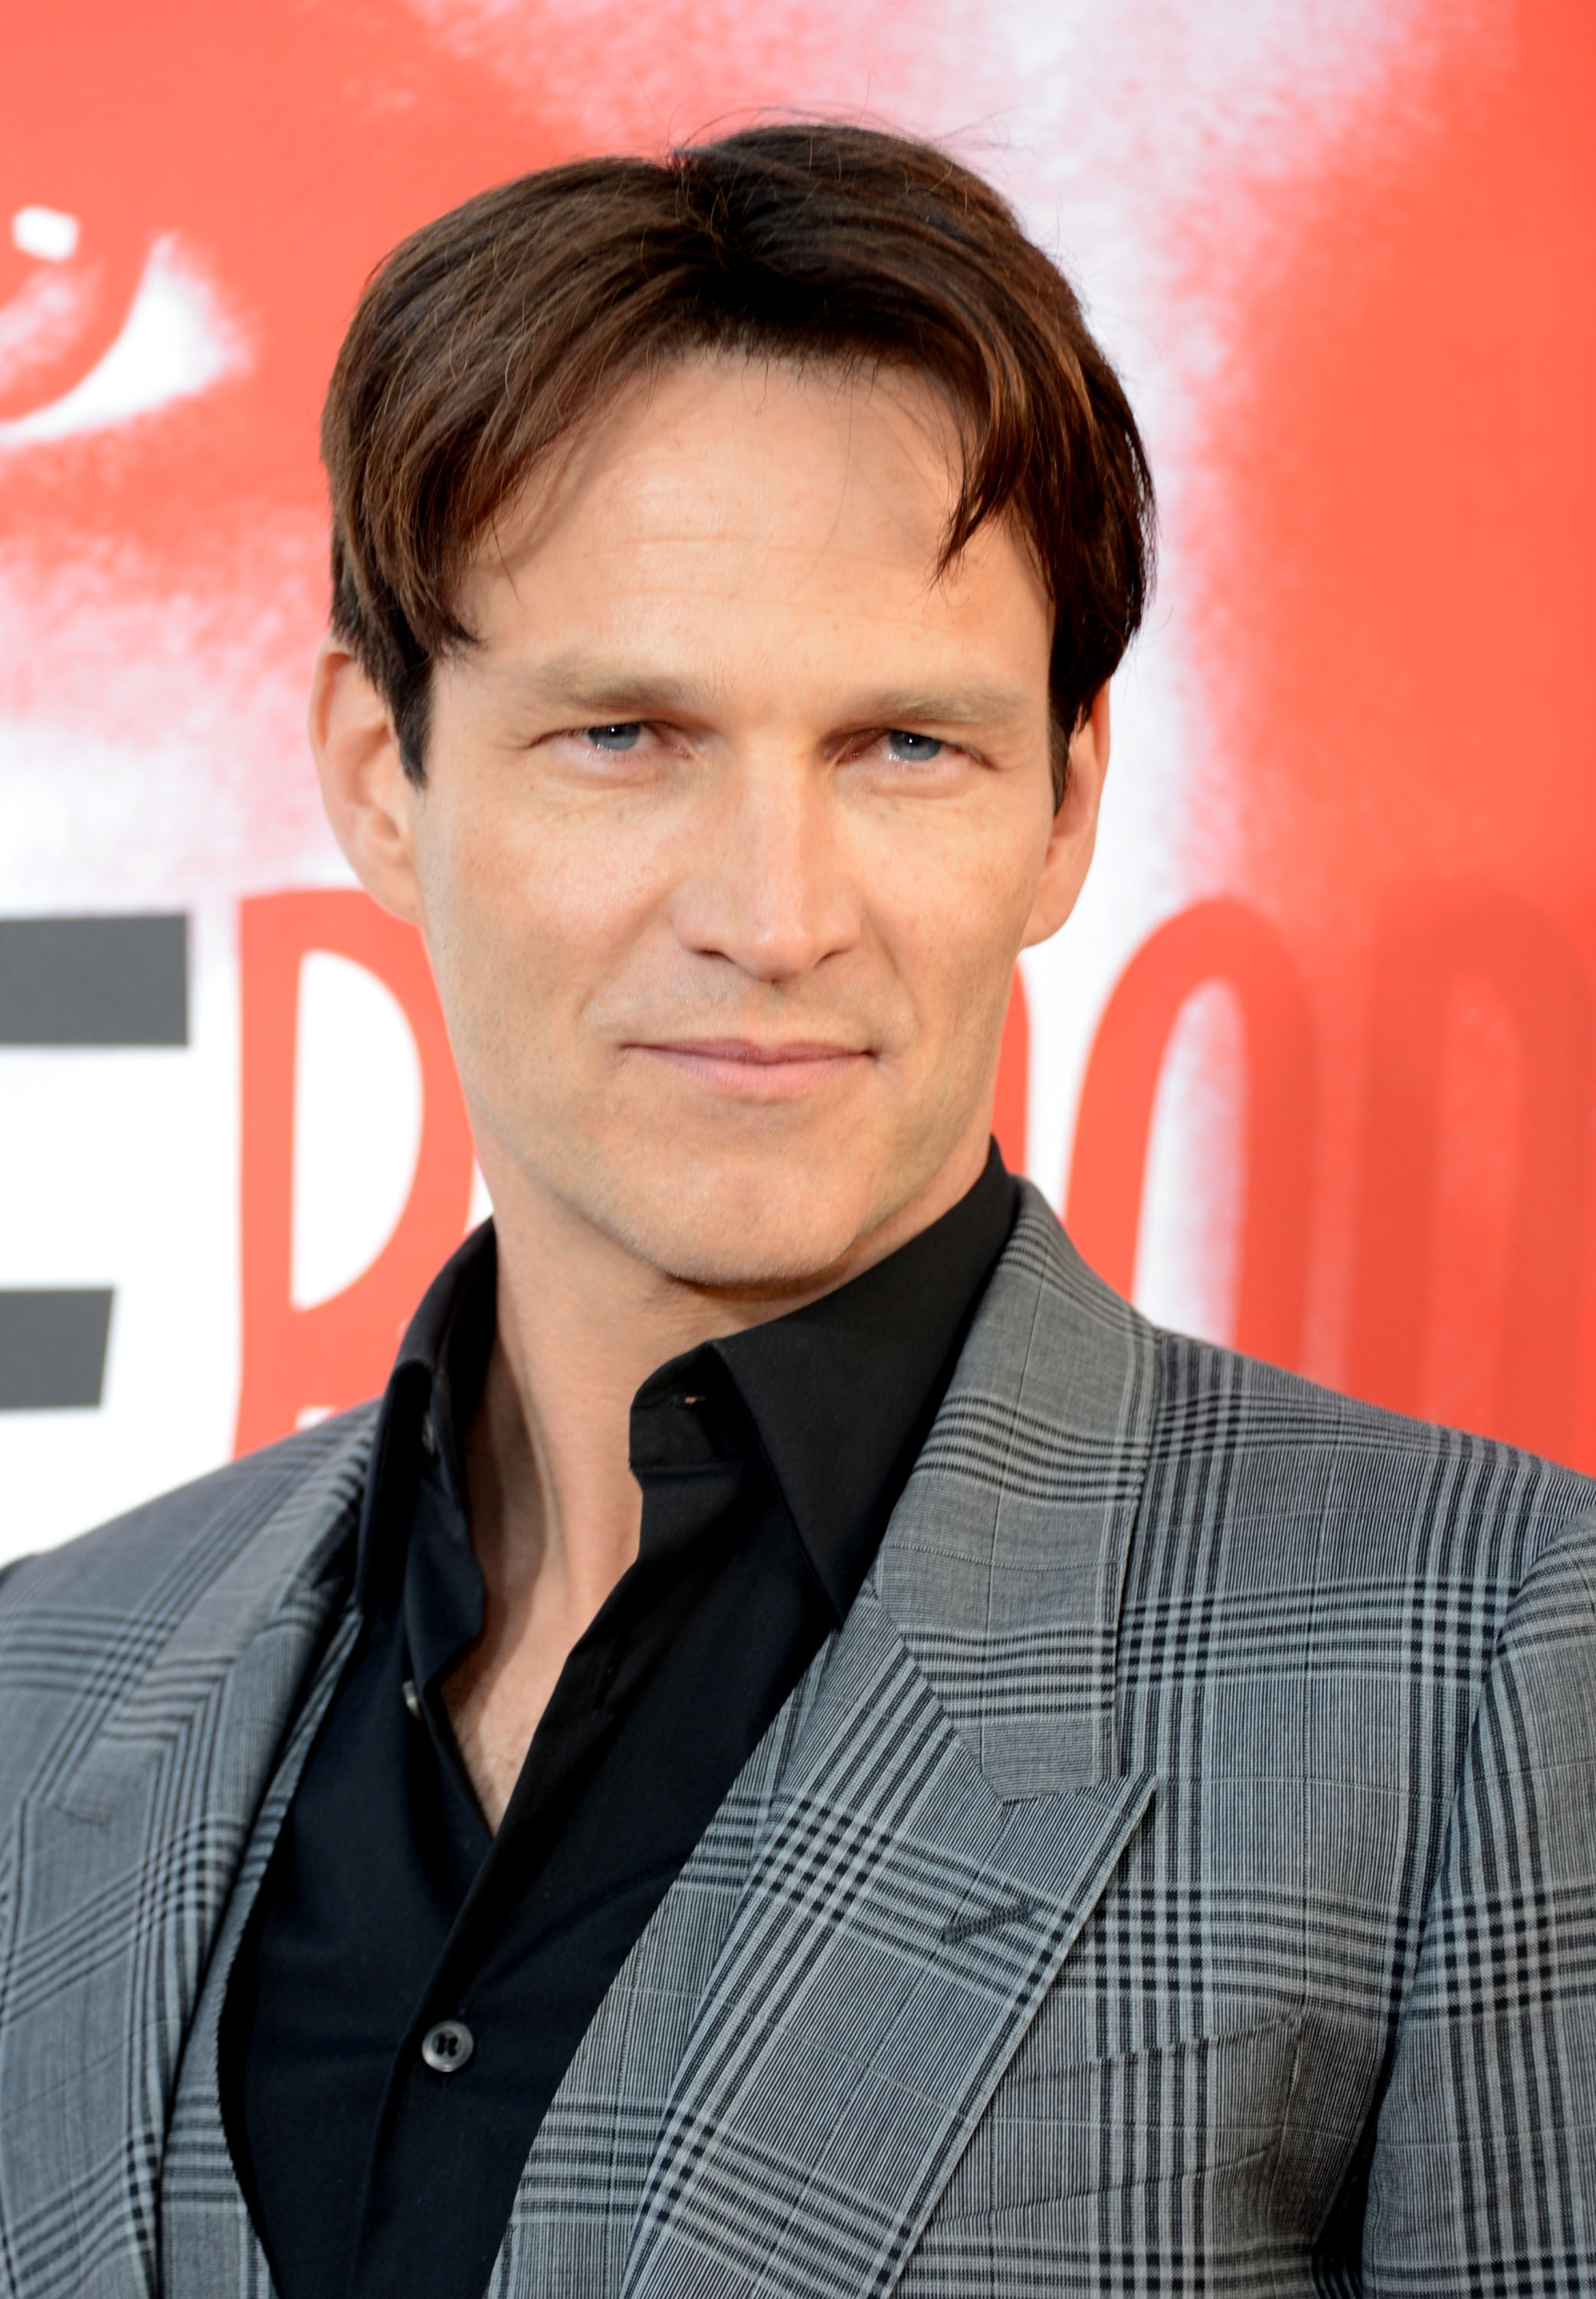 Stephen Moyer flashed his blue eyes at the camera. - Stephen-Moyer-flashed-his-blue-eyes-camera